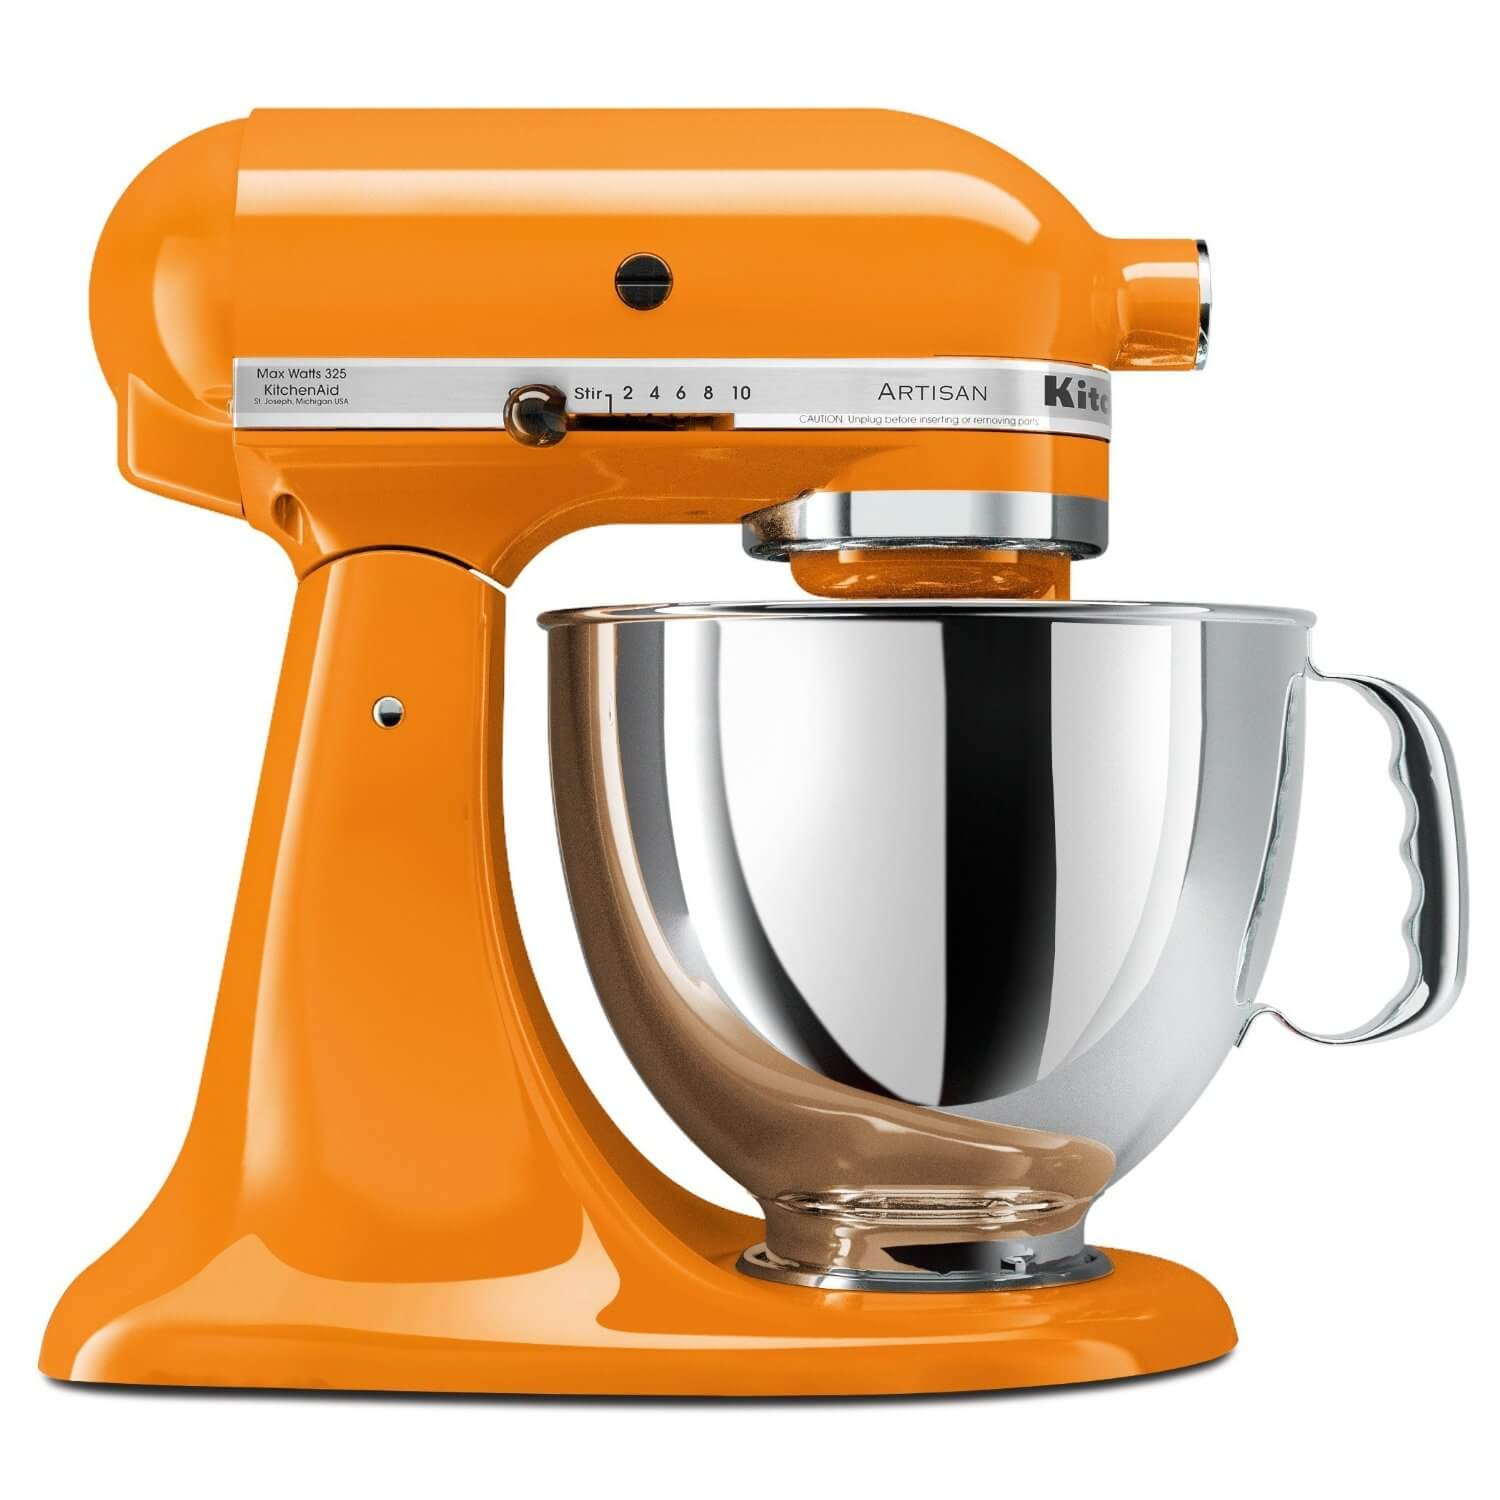 Uncategorized Retro Kitchen Small Appliances a microwave oven thats not too big small just right my kitchenaid artisan stand mixer in 24 retro colors